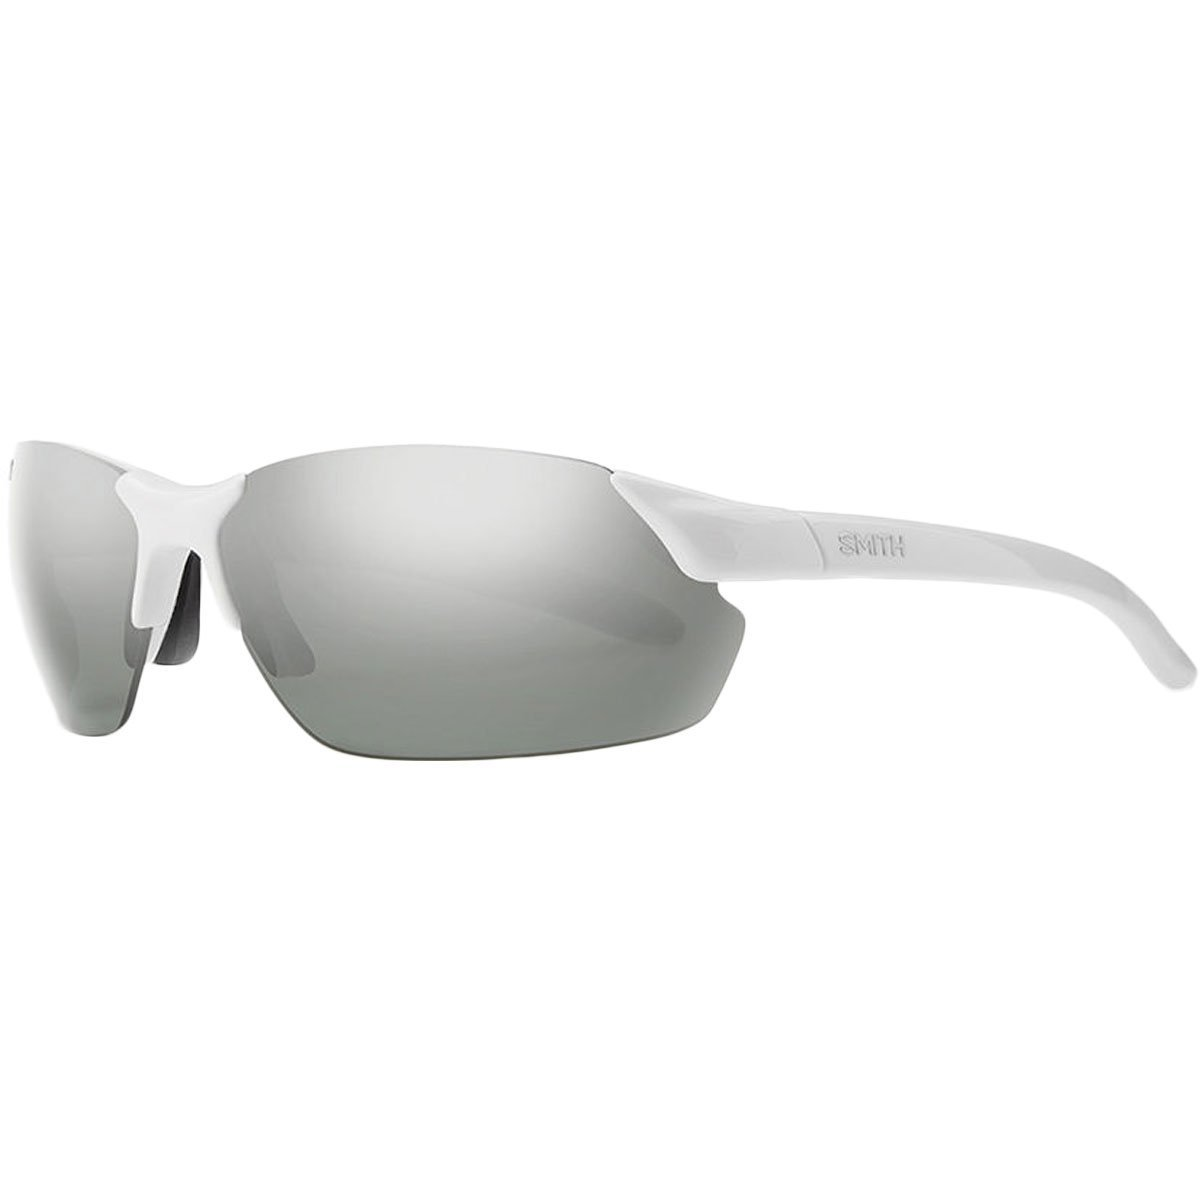 Smith Optics paralelo Max gafas de sol (marco blanco/lentes polarizadas Platinum): Amazon.es: Ropa y accesorios